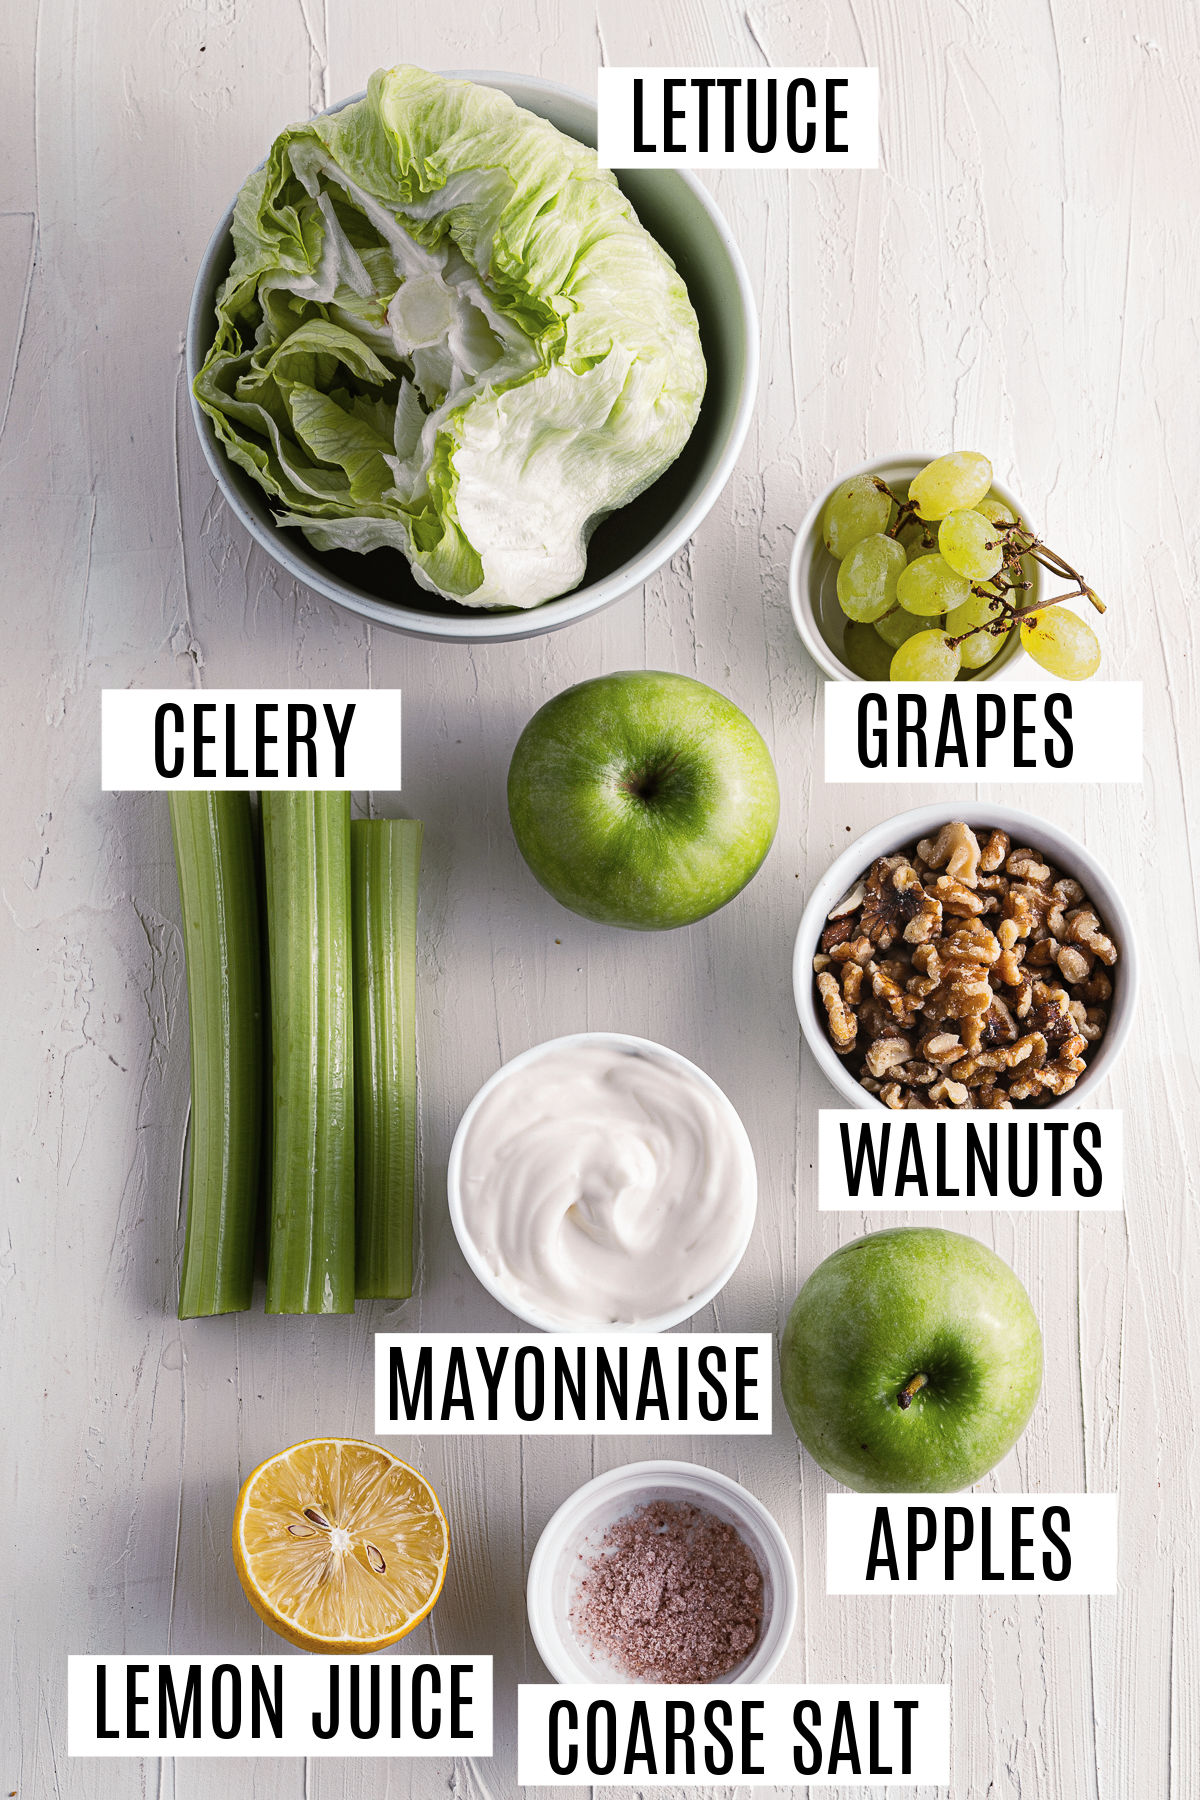 Ingredients needed to make waldorf salad.